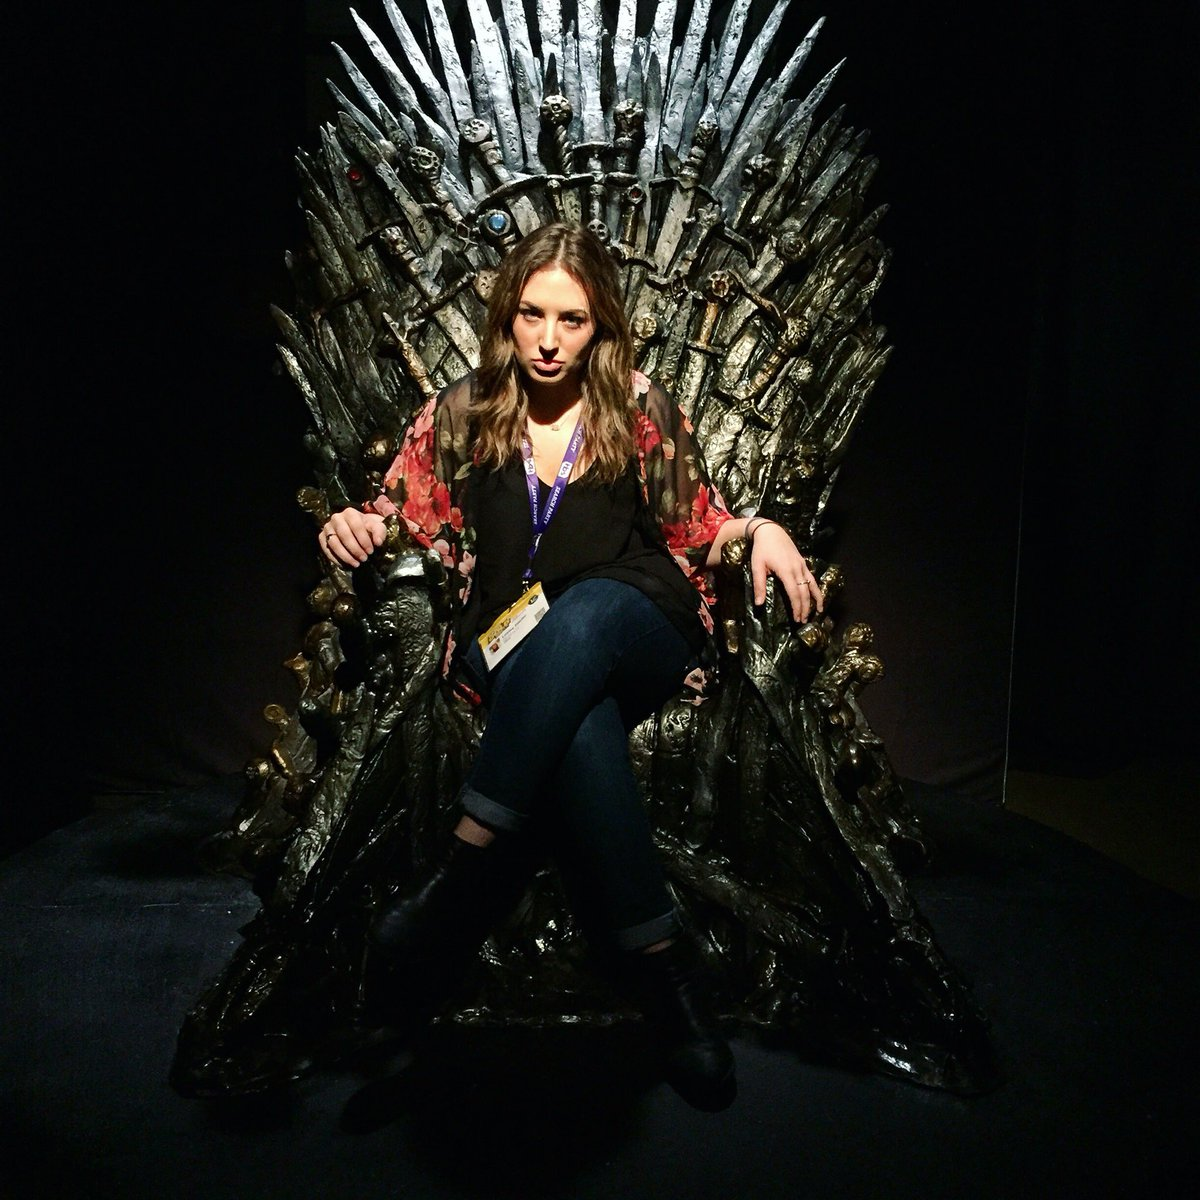 """""""The Iron Throne is mine by rights. All those who deny that are my foes."""" #SXSW #SXSWesteros https://t.co/Dxsn7PXCan"""